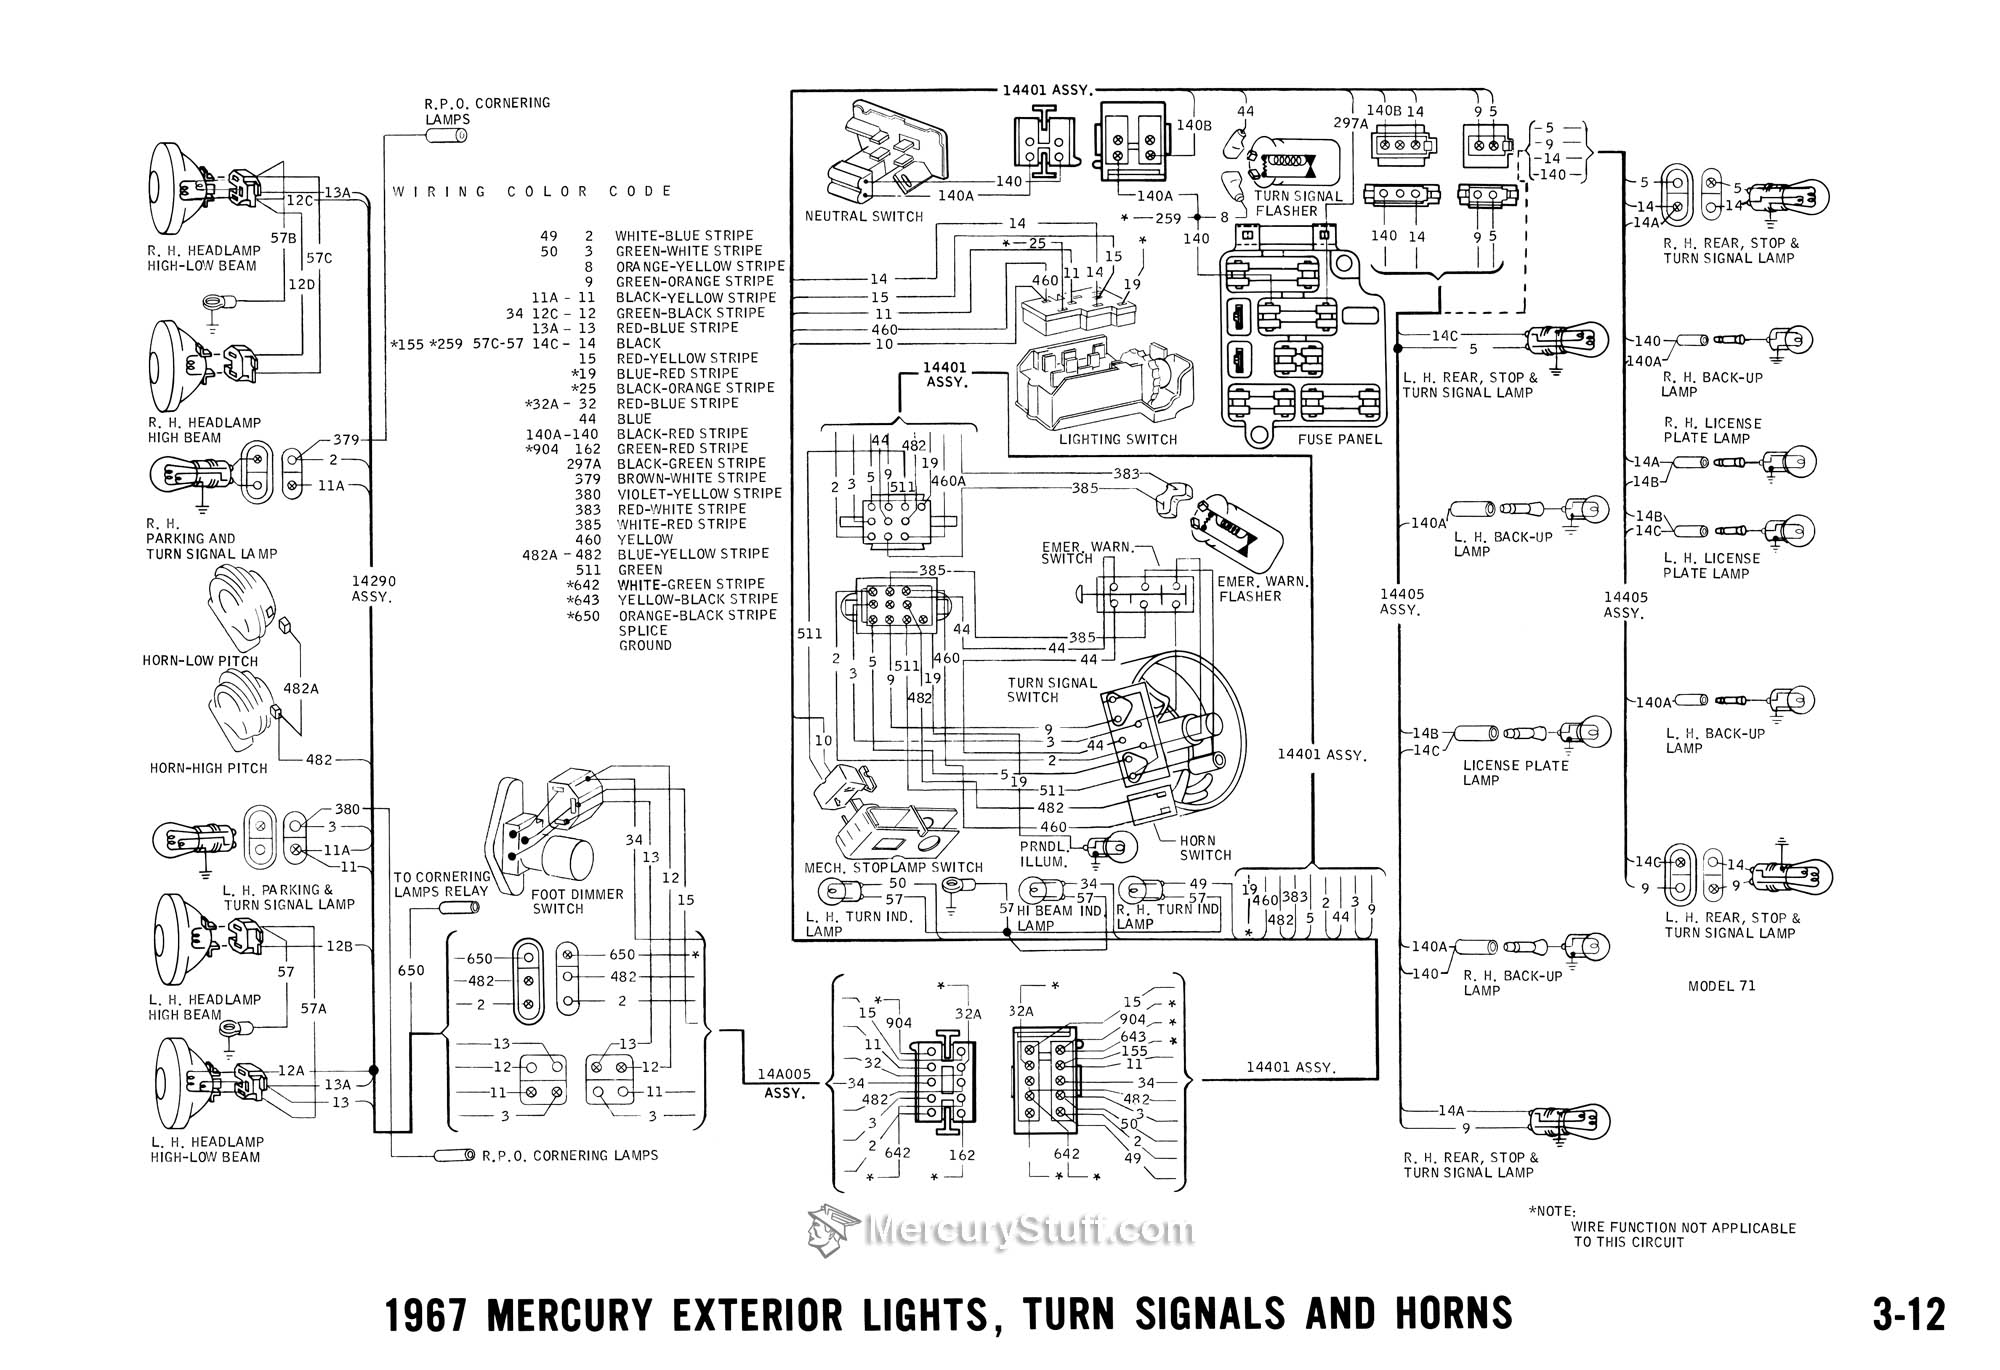 1967 Mercury Cougar Wiring Schematics Diagrams Shelby Cobra Turn Signal Diagram Cornering Lights 1966 Forum Mustang Comet